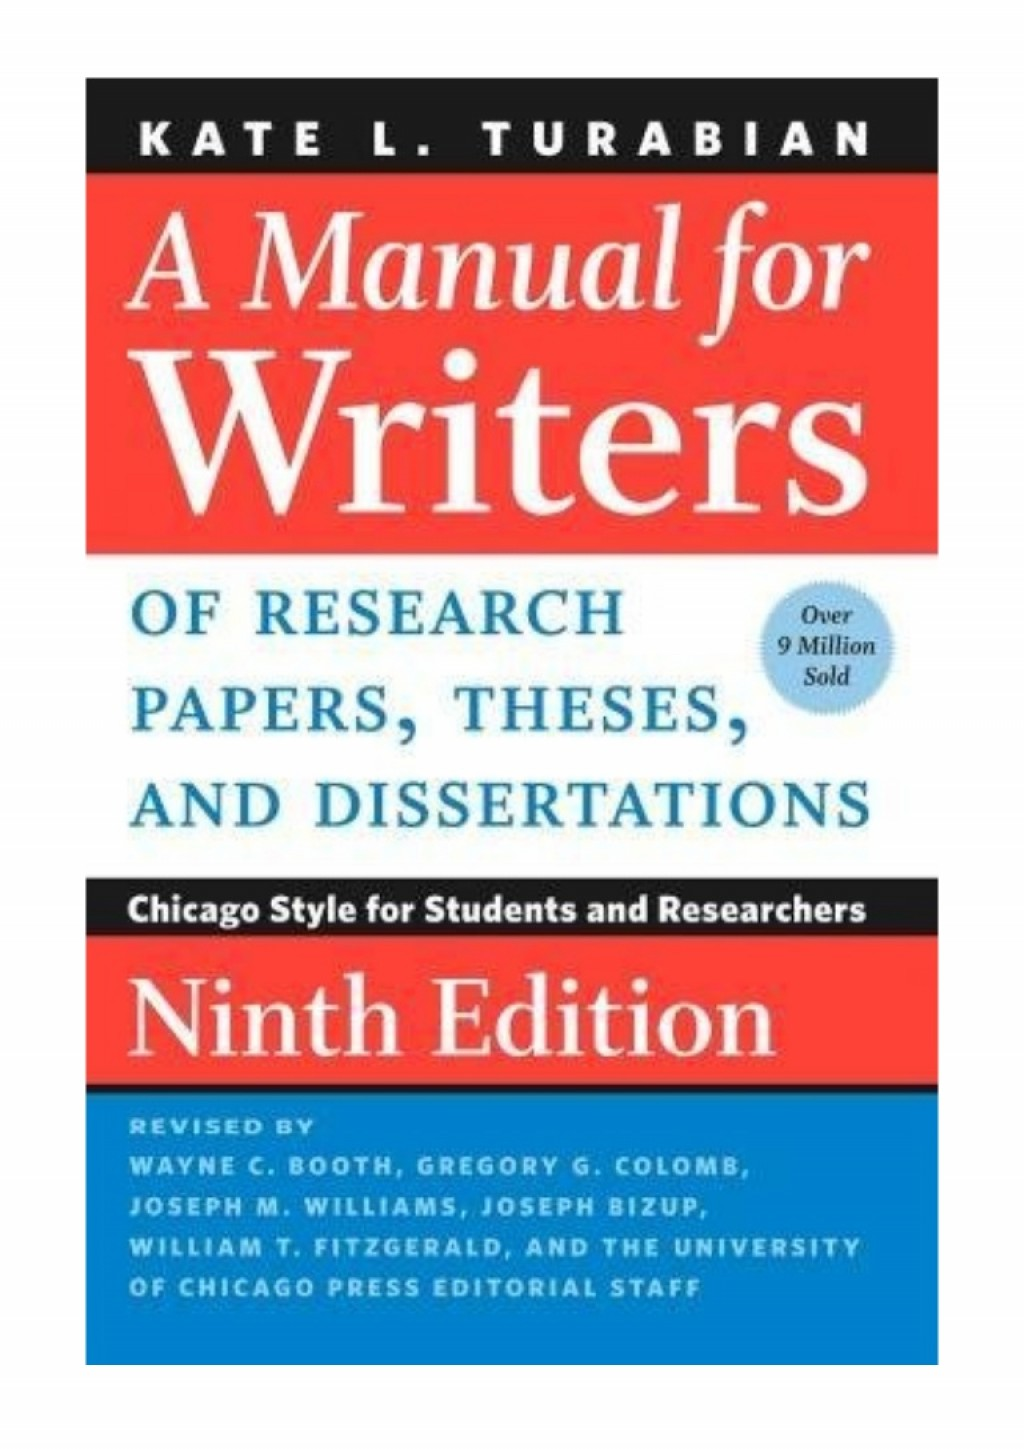 008 Manual For Writers Of Research Papers Theses And Dissertations Chicago Style Students Paper 022643057x Amanualforwritersofresearchpapersthesesanddissertationsnintheditionbykatel Rare A Large